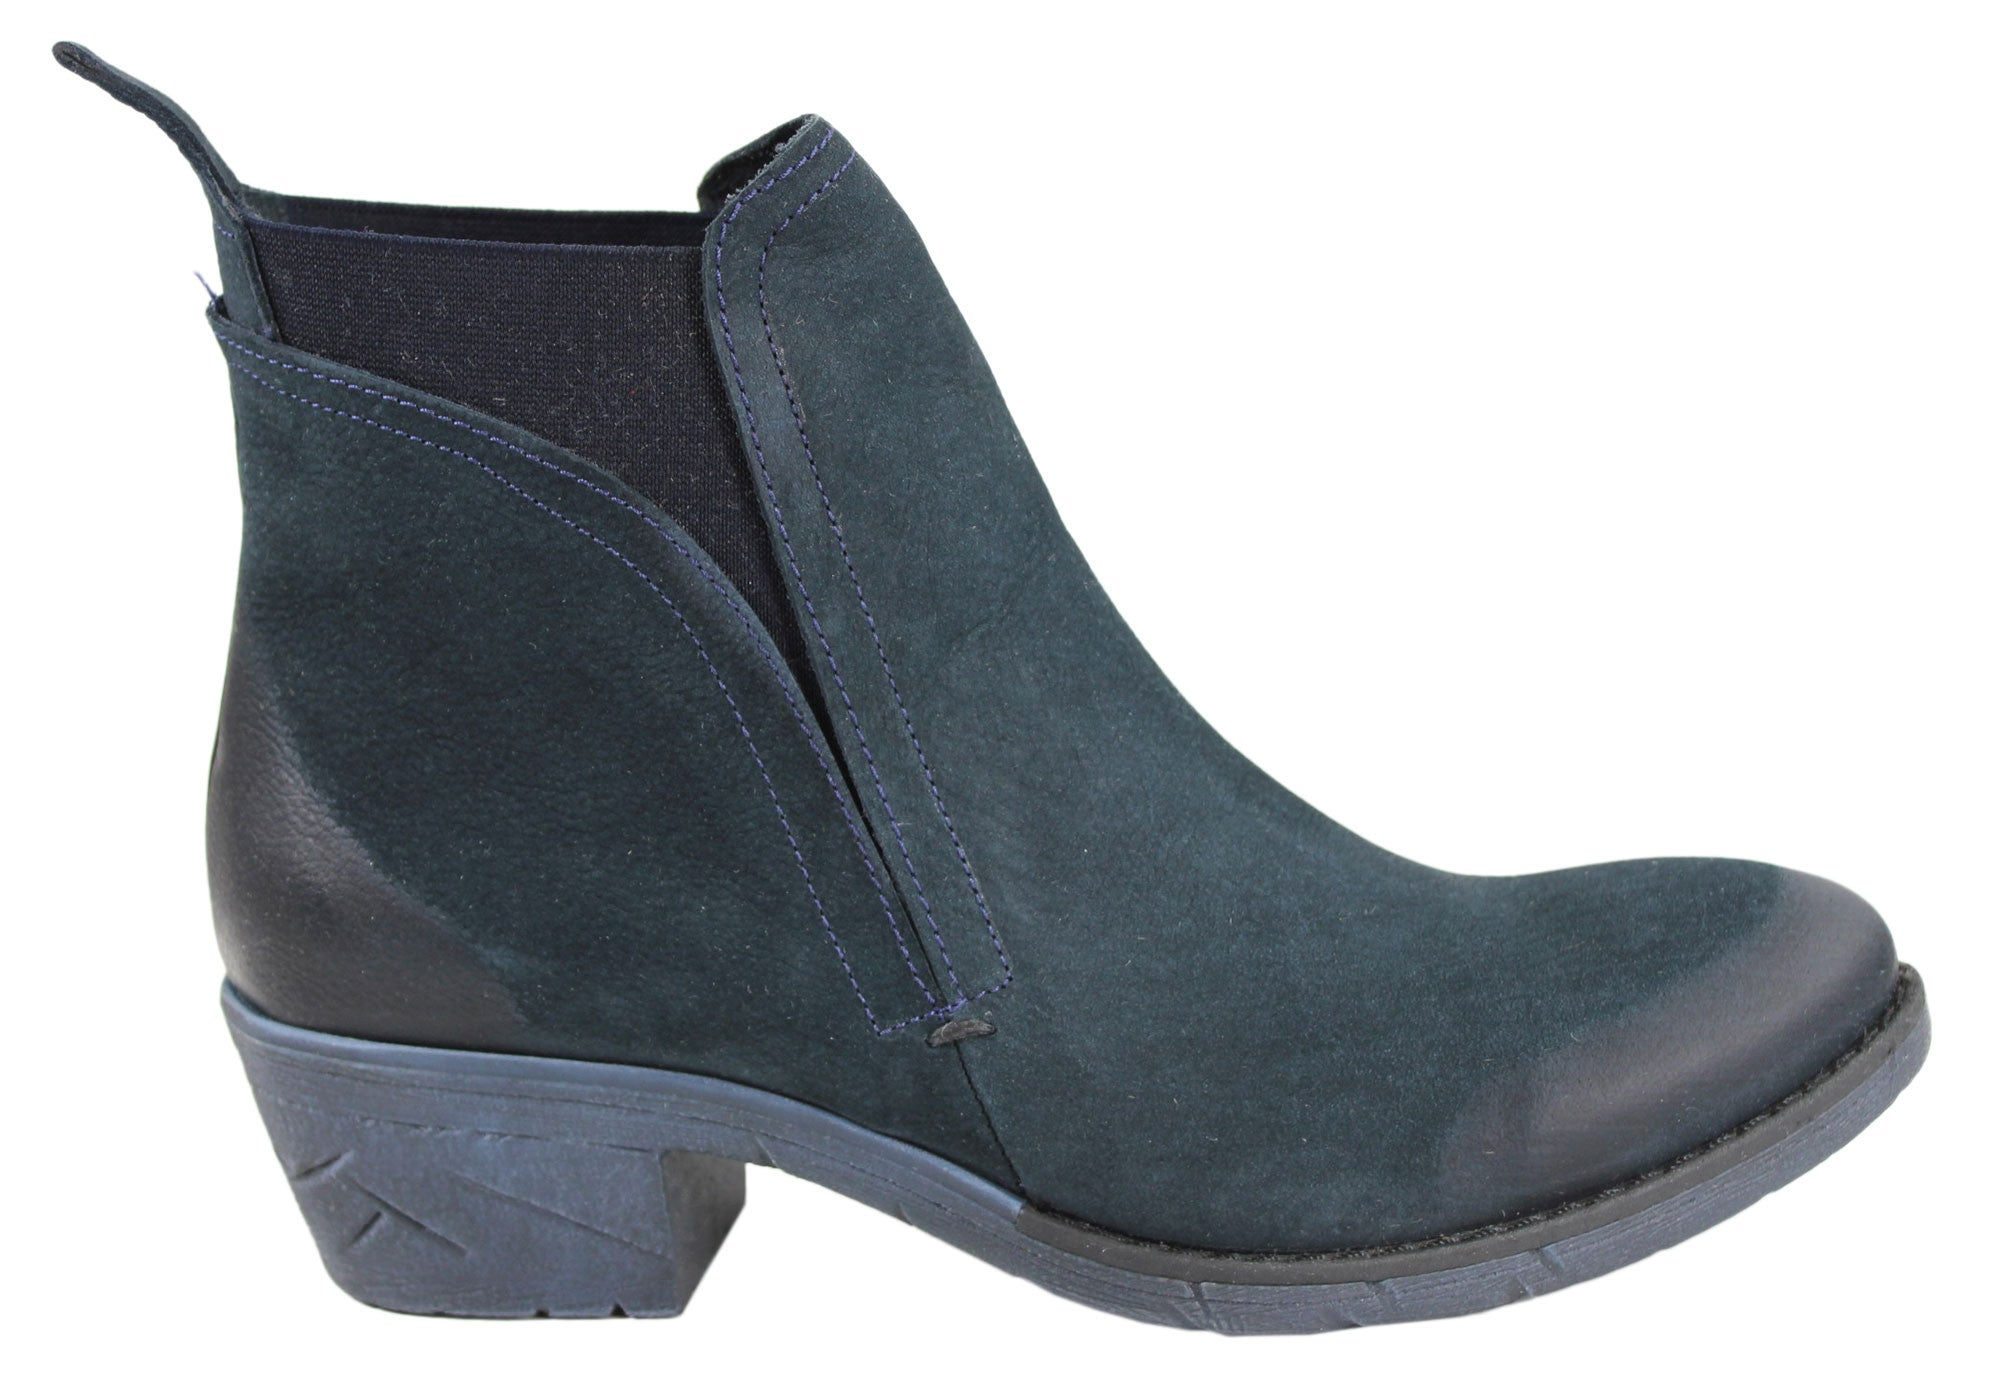 NEW BUENO USAK WOMENS LEATHER SHOES MADE IN TURKEY